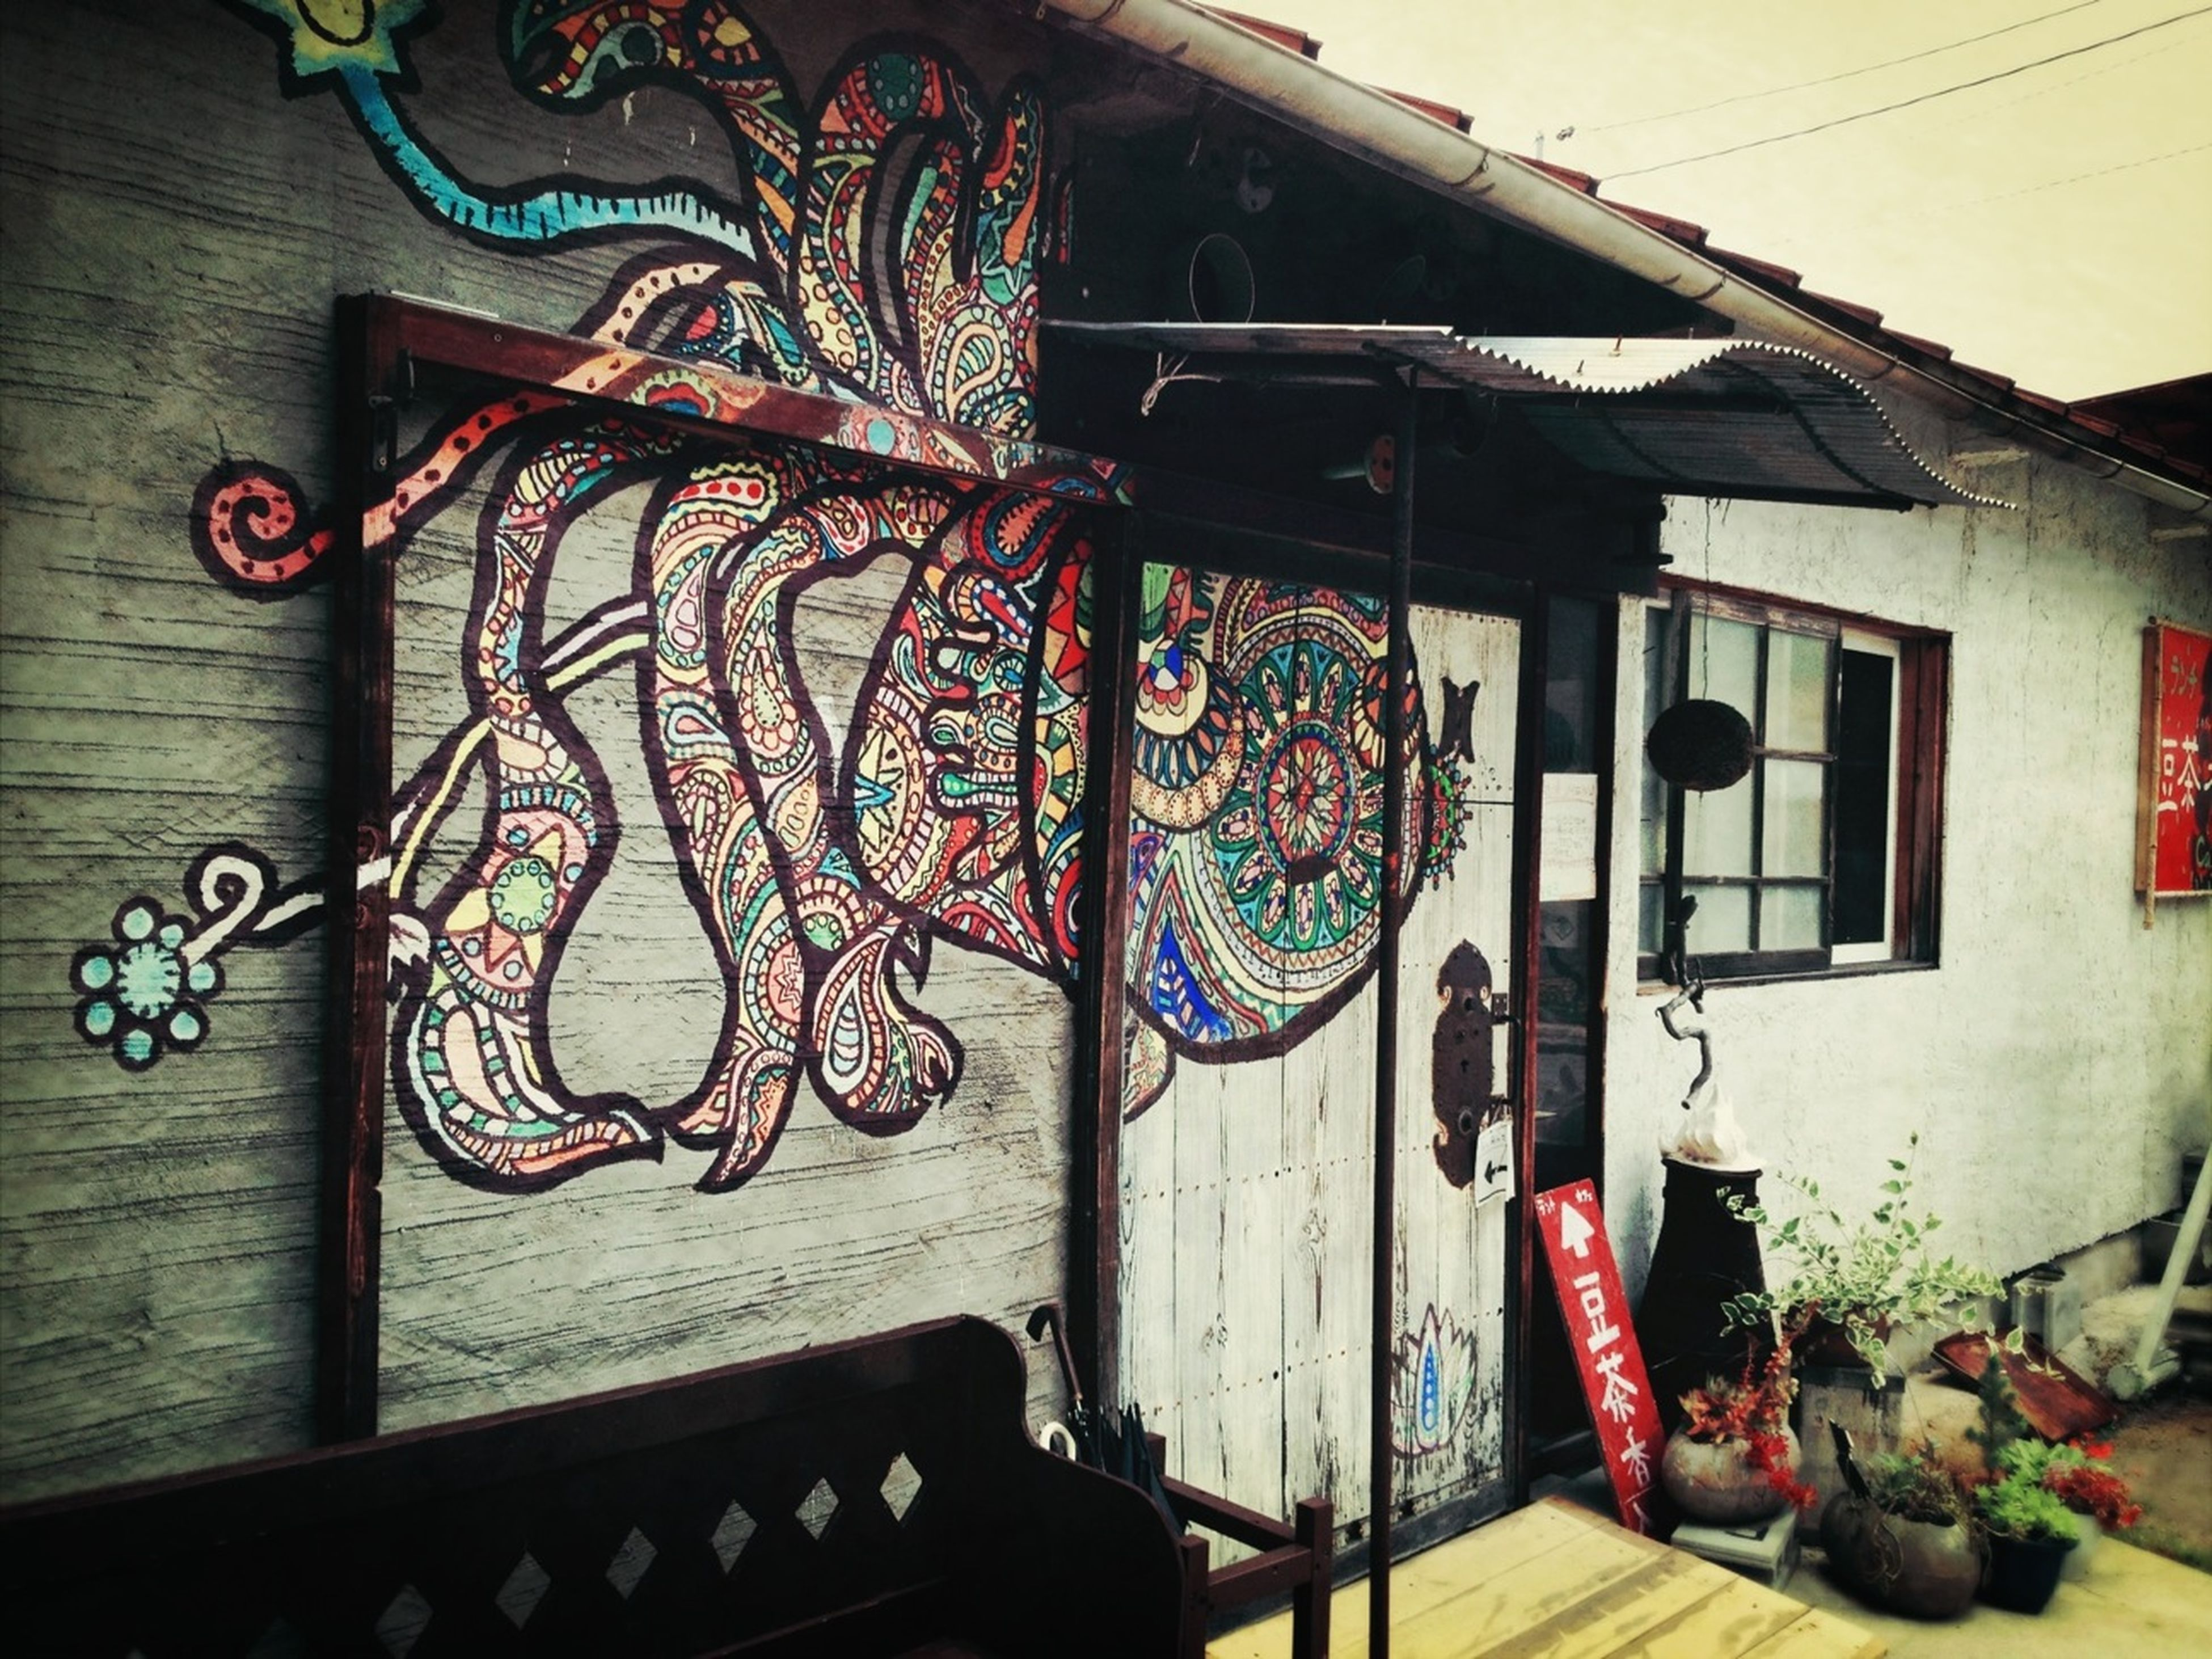 indoors, art and craft, art, creativity, wood - material, wall - building feature, house, built structure, architecture, graffiti, hanging, multi colored, no people, door, decoration, home interior, wall, design, building exterior, day